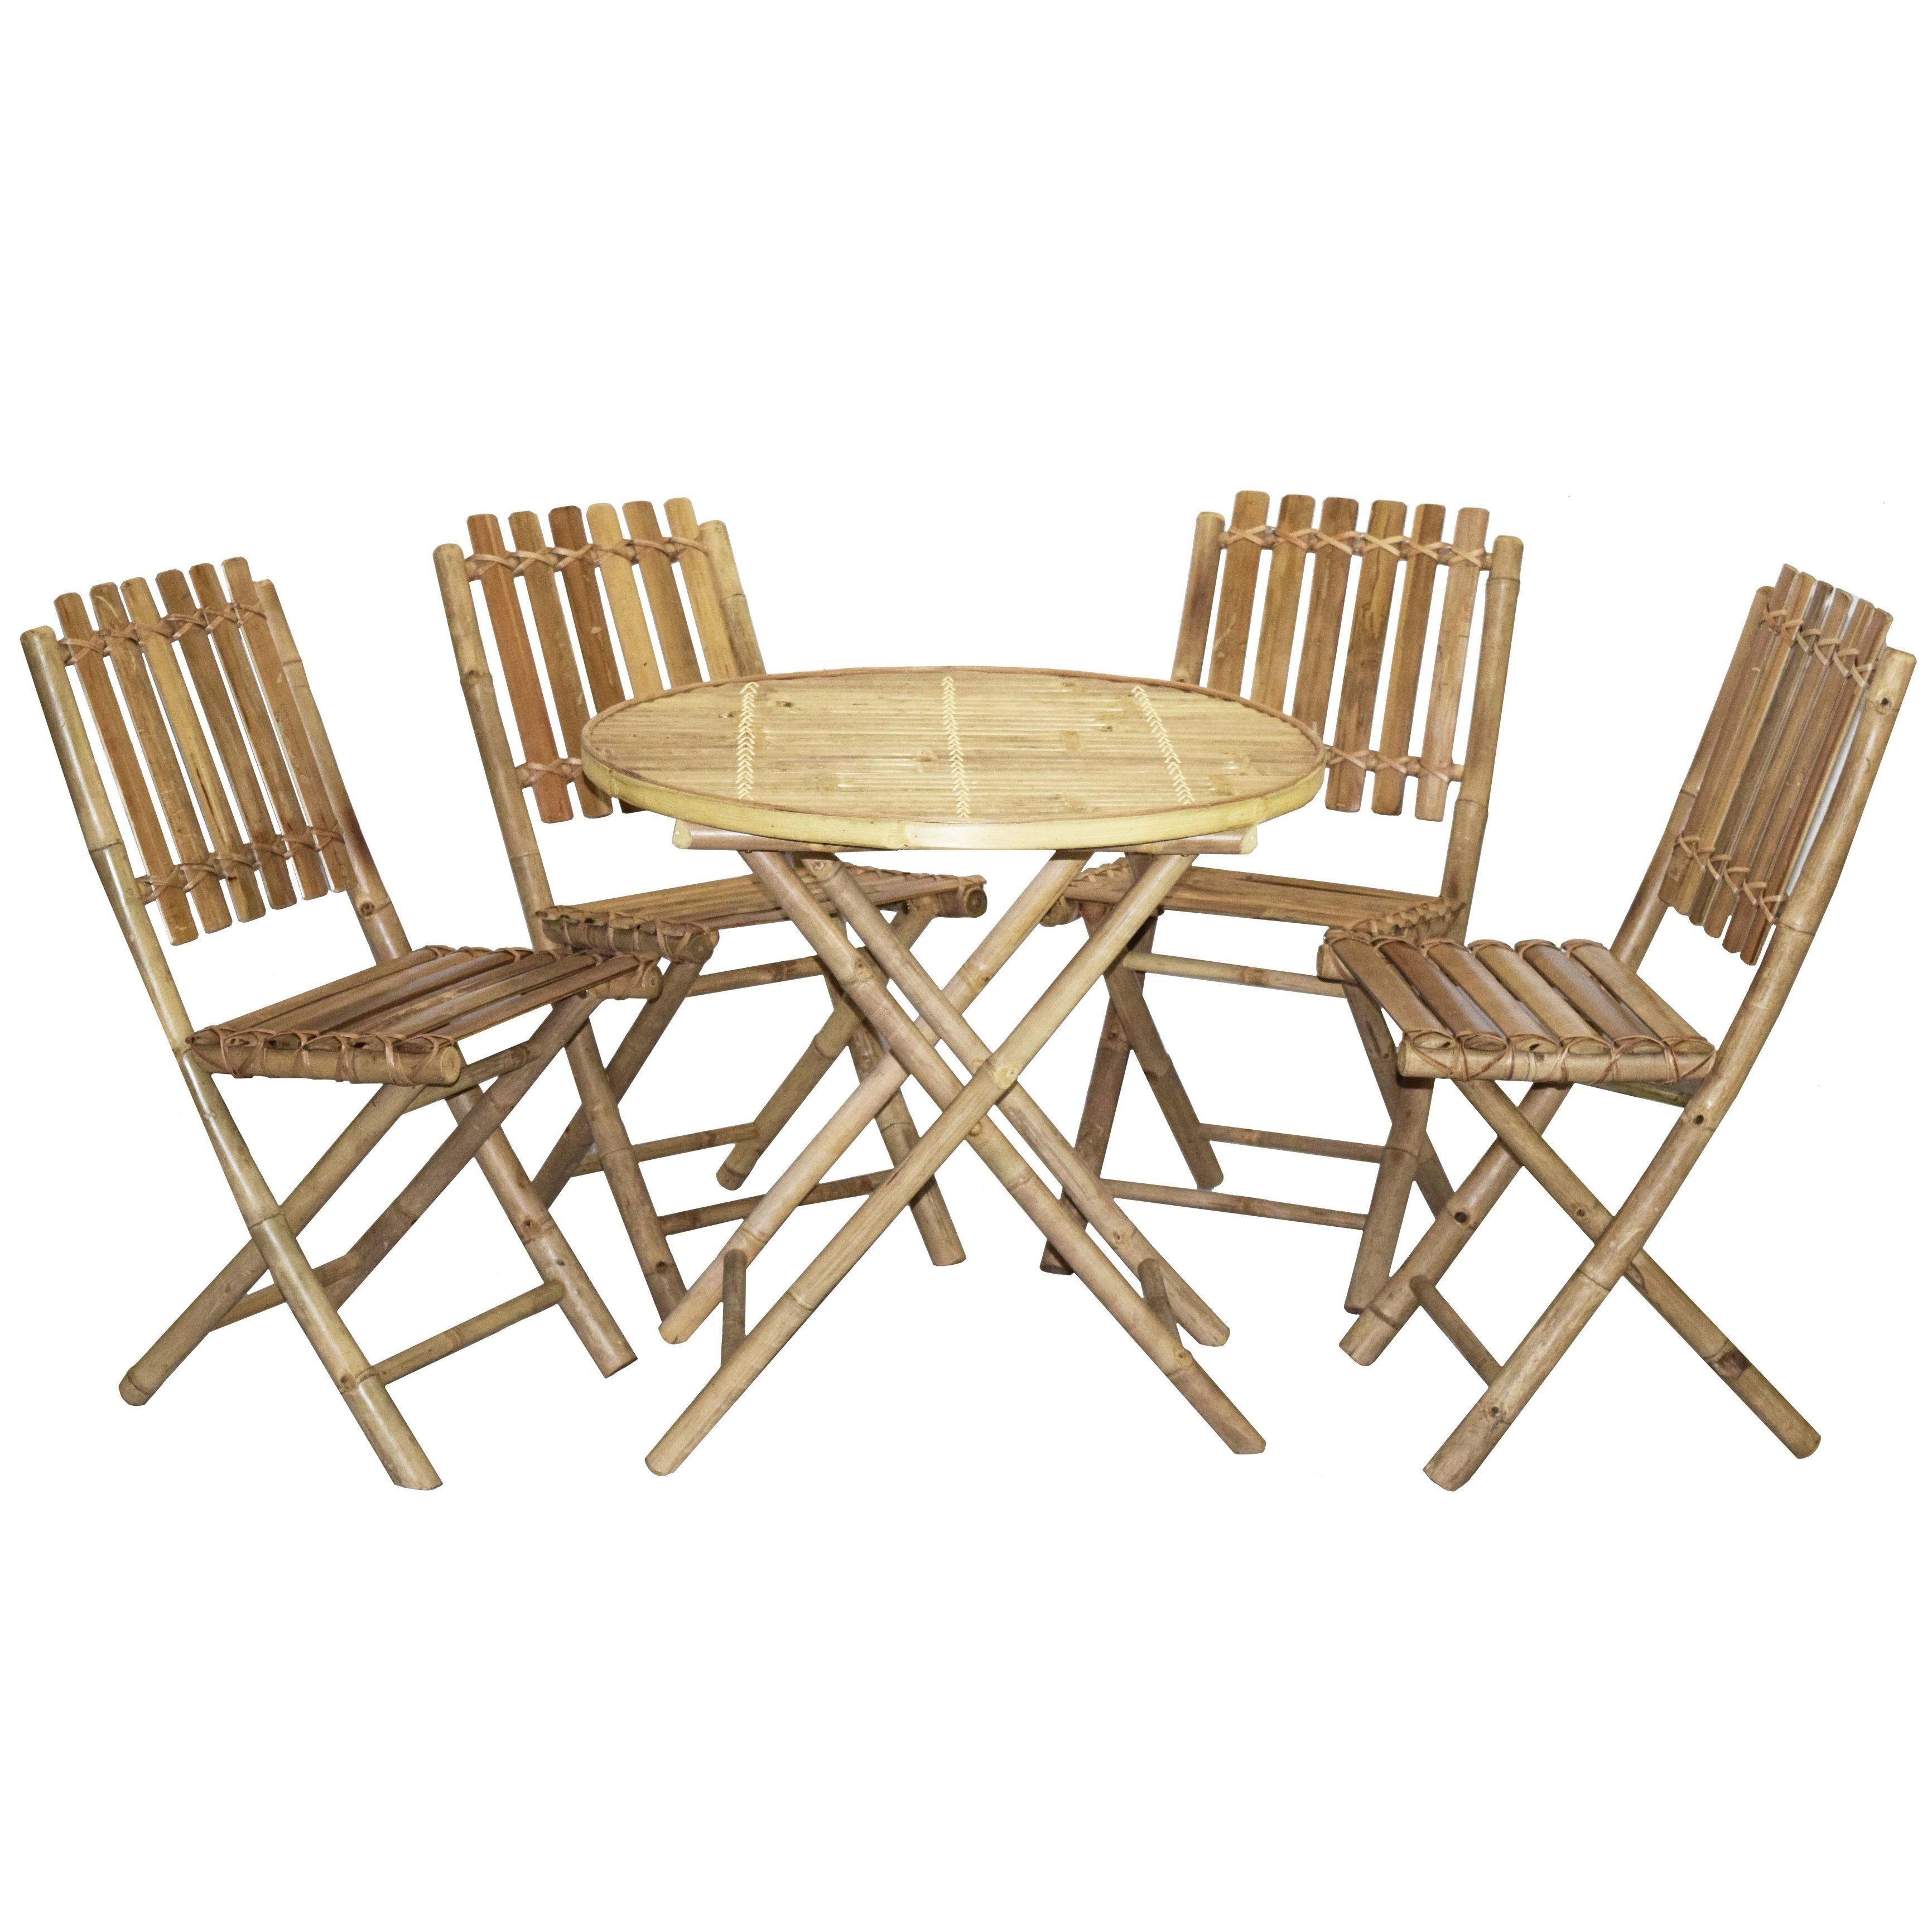 Wood 5 Piece Round Patio Dining Set   The Wood 5 Piece Round Patio Dining  Set Is A Charming Addition To Your Porch Or Patio, Bringing Refined Styling  With ...